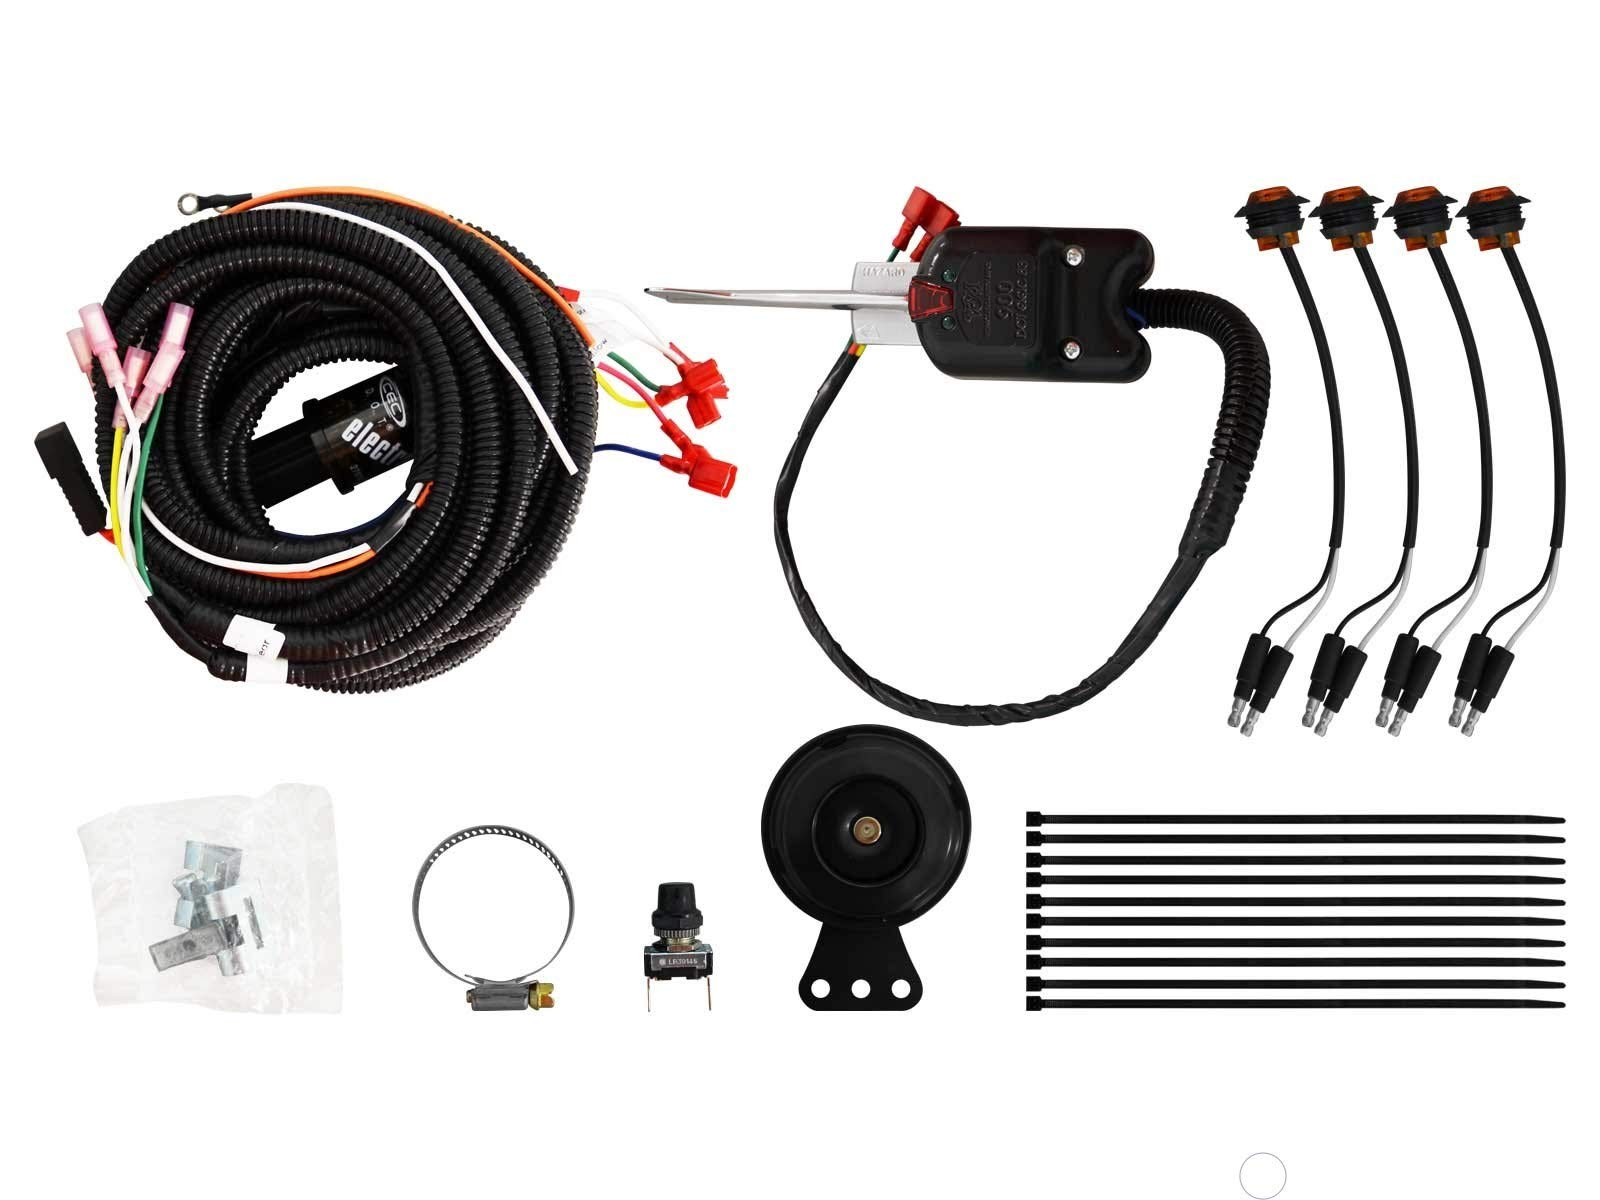 SuperATV Turn Signal Kit for Polaris Ranger XP 1000 / Crew (See Fitment) - With Steering Column Switch and Dash Horn - Plug and Play For Easy Installation! by SuperATV.com